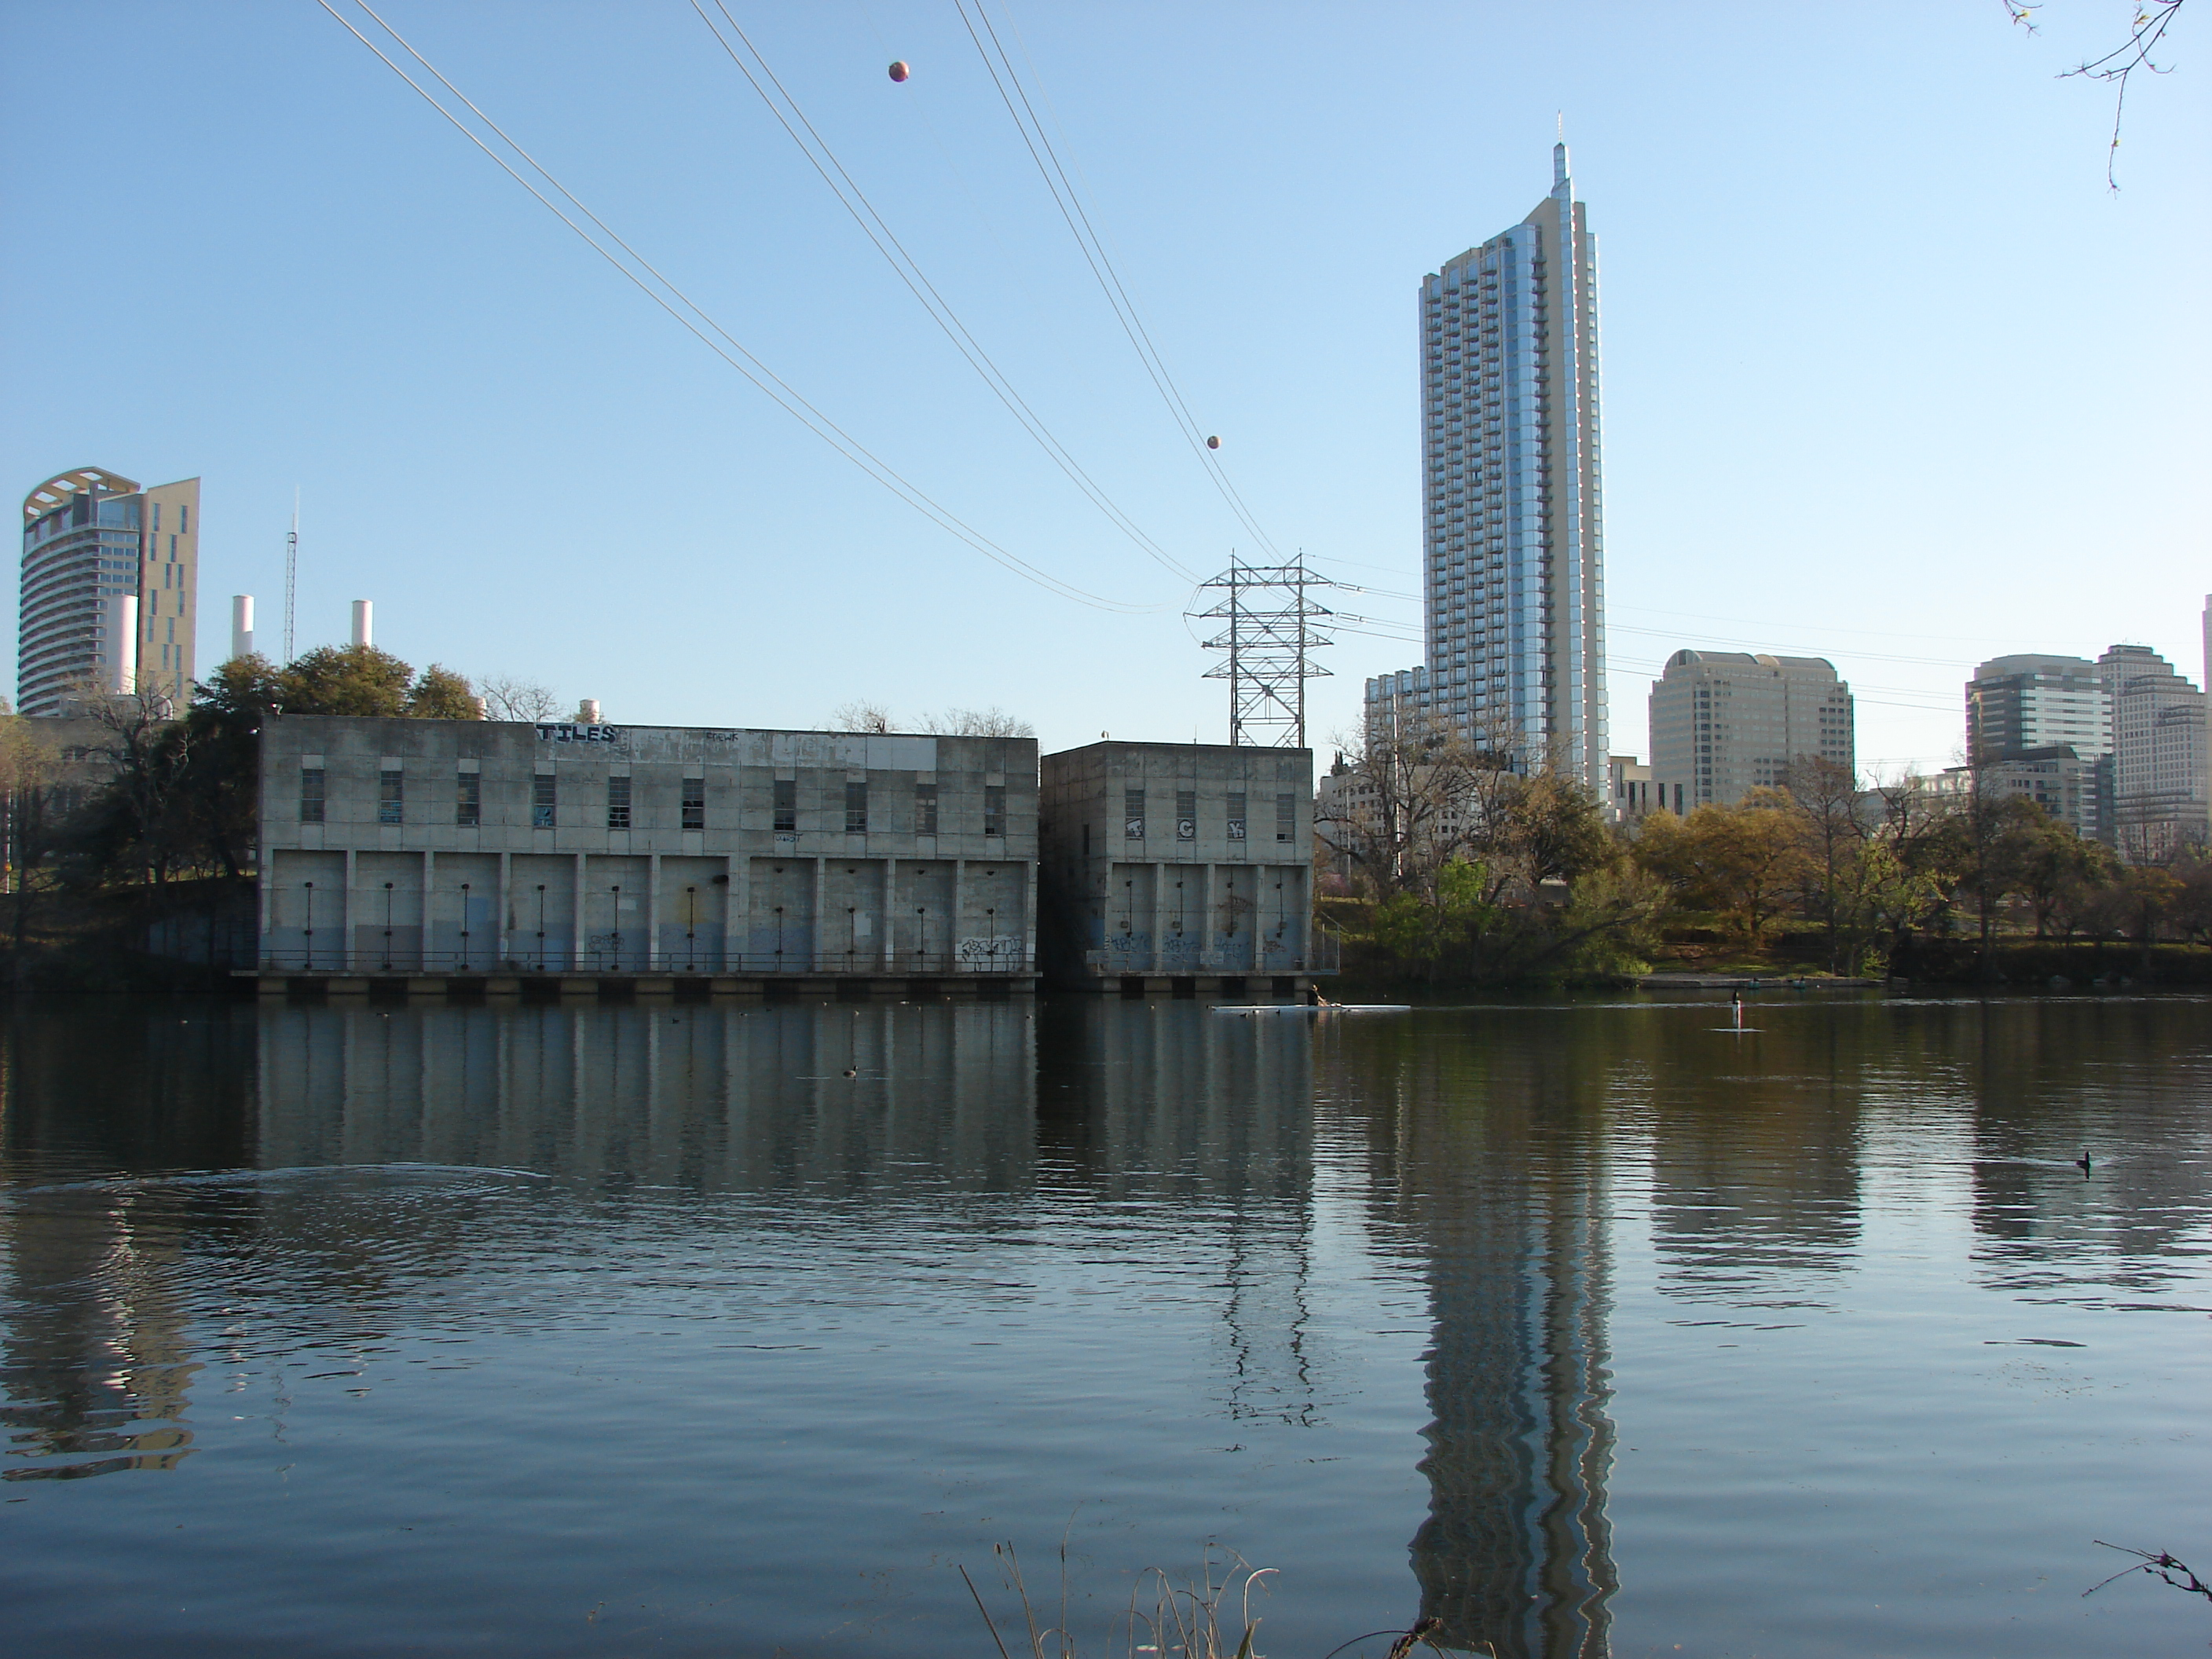 Former power plant intake on lake with a couple of skyscrapers behind